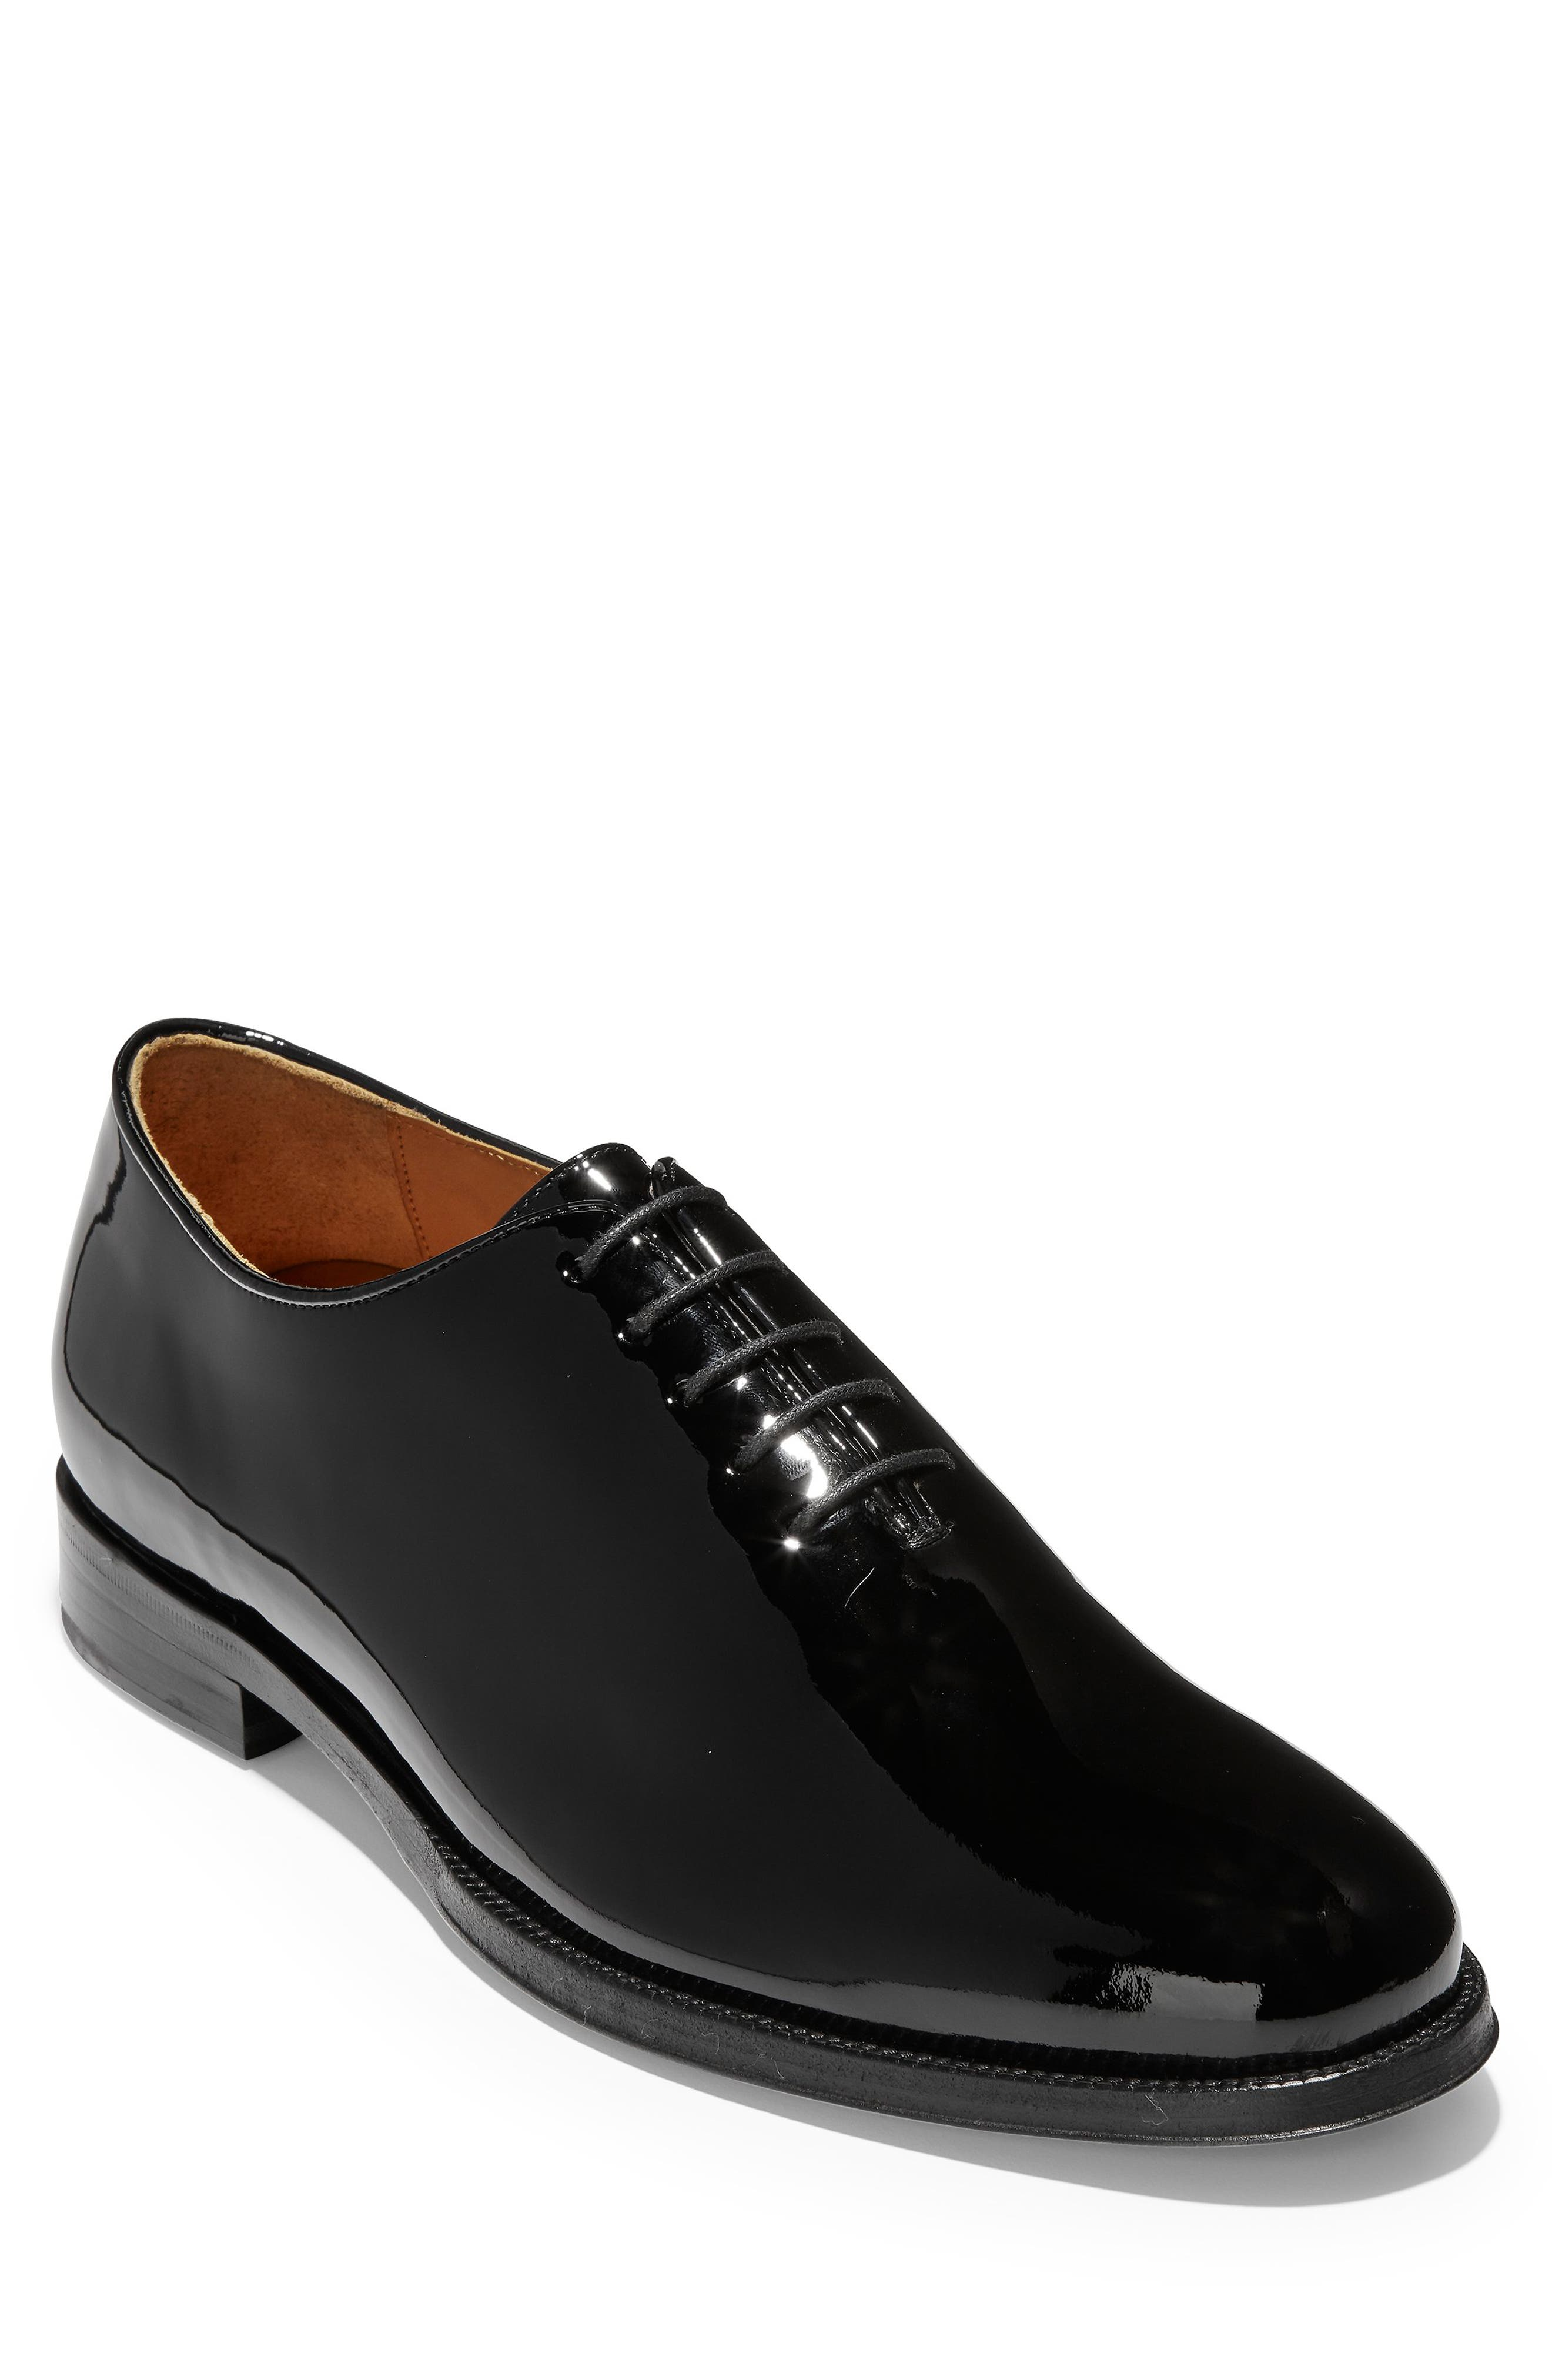 American Classics Grammercy Whole Cut Shoe,                         Main,                         color, BLACK PATENT LEATHER